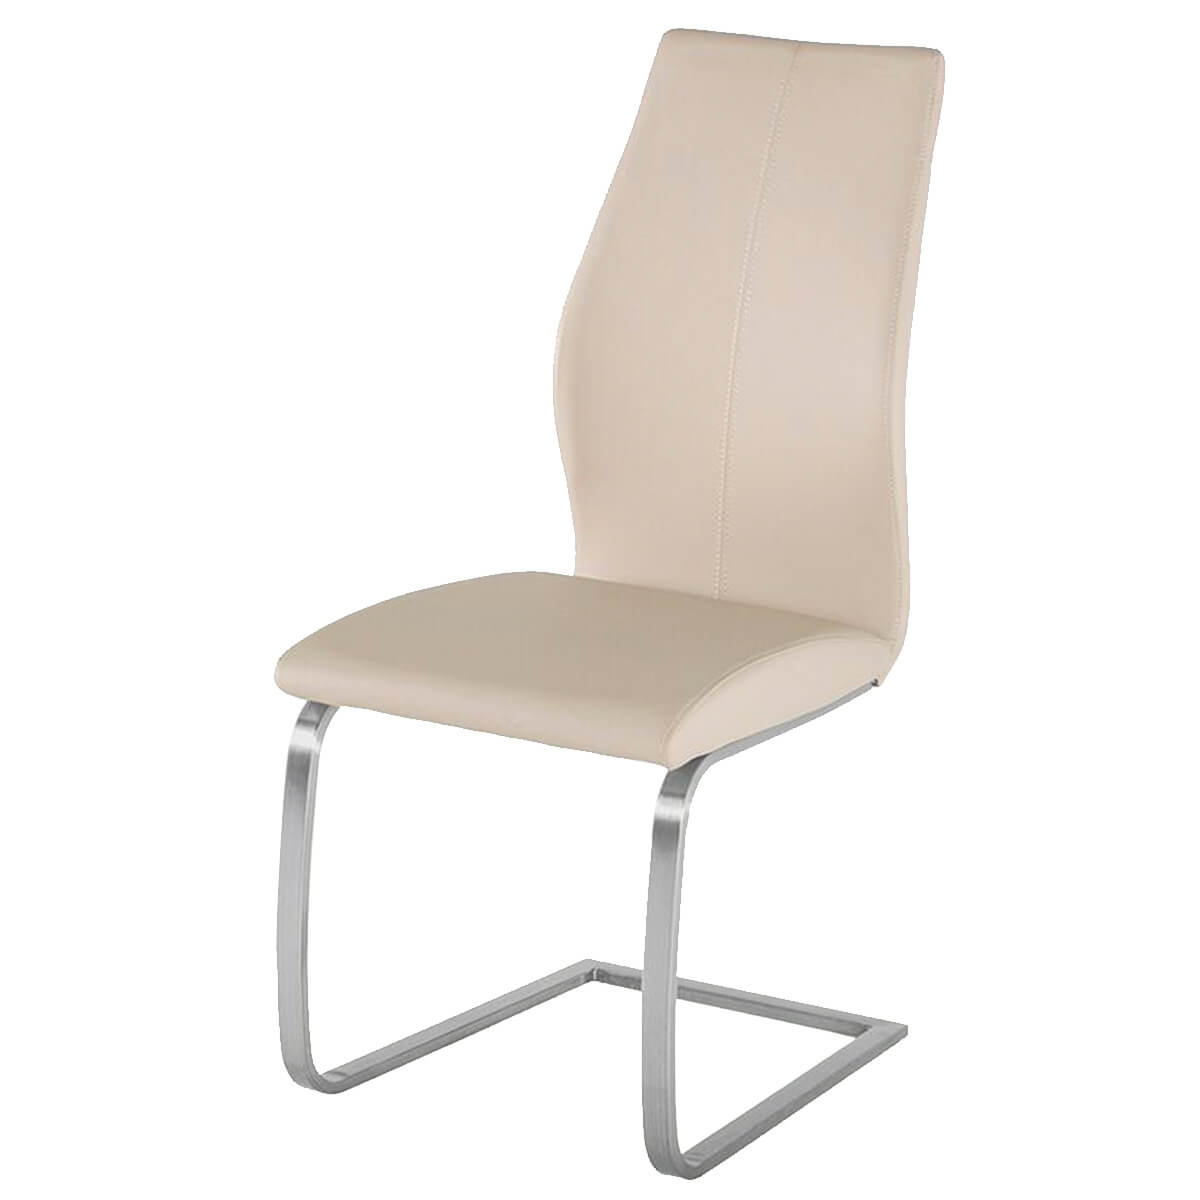 Taupe Dining Chairs Irma Multi Coloured Chairs Taupe Faux Leather Dining